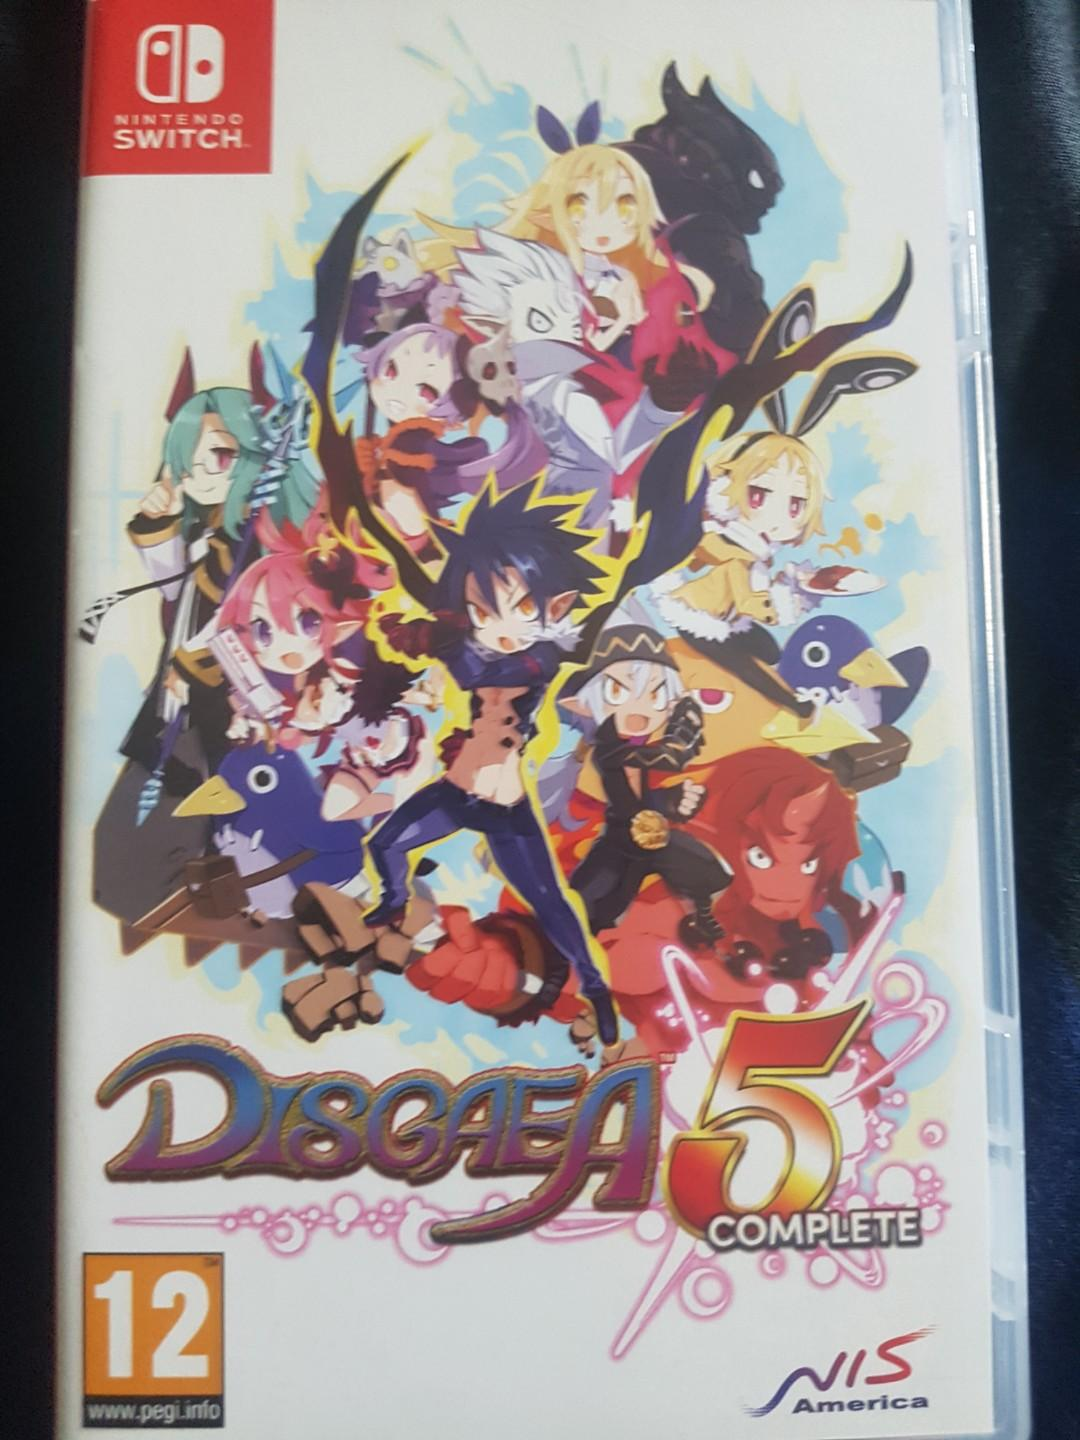 DISGAEA 5 complete Switch, Toys & Games, Video Gaming, Video